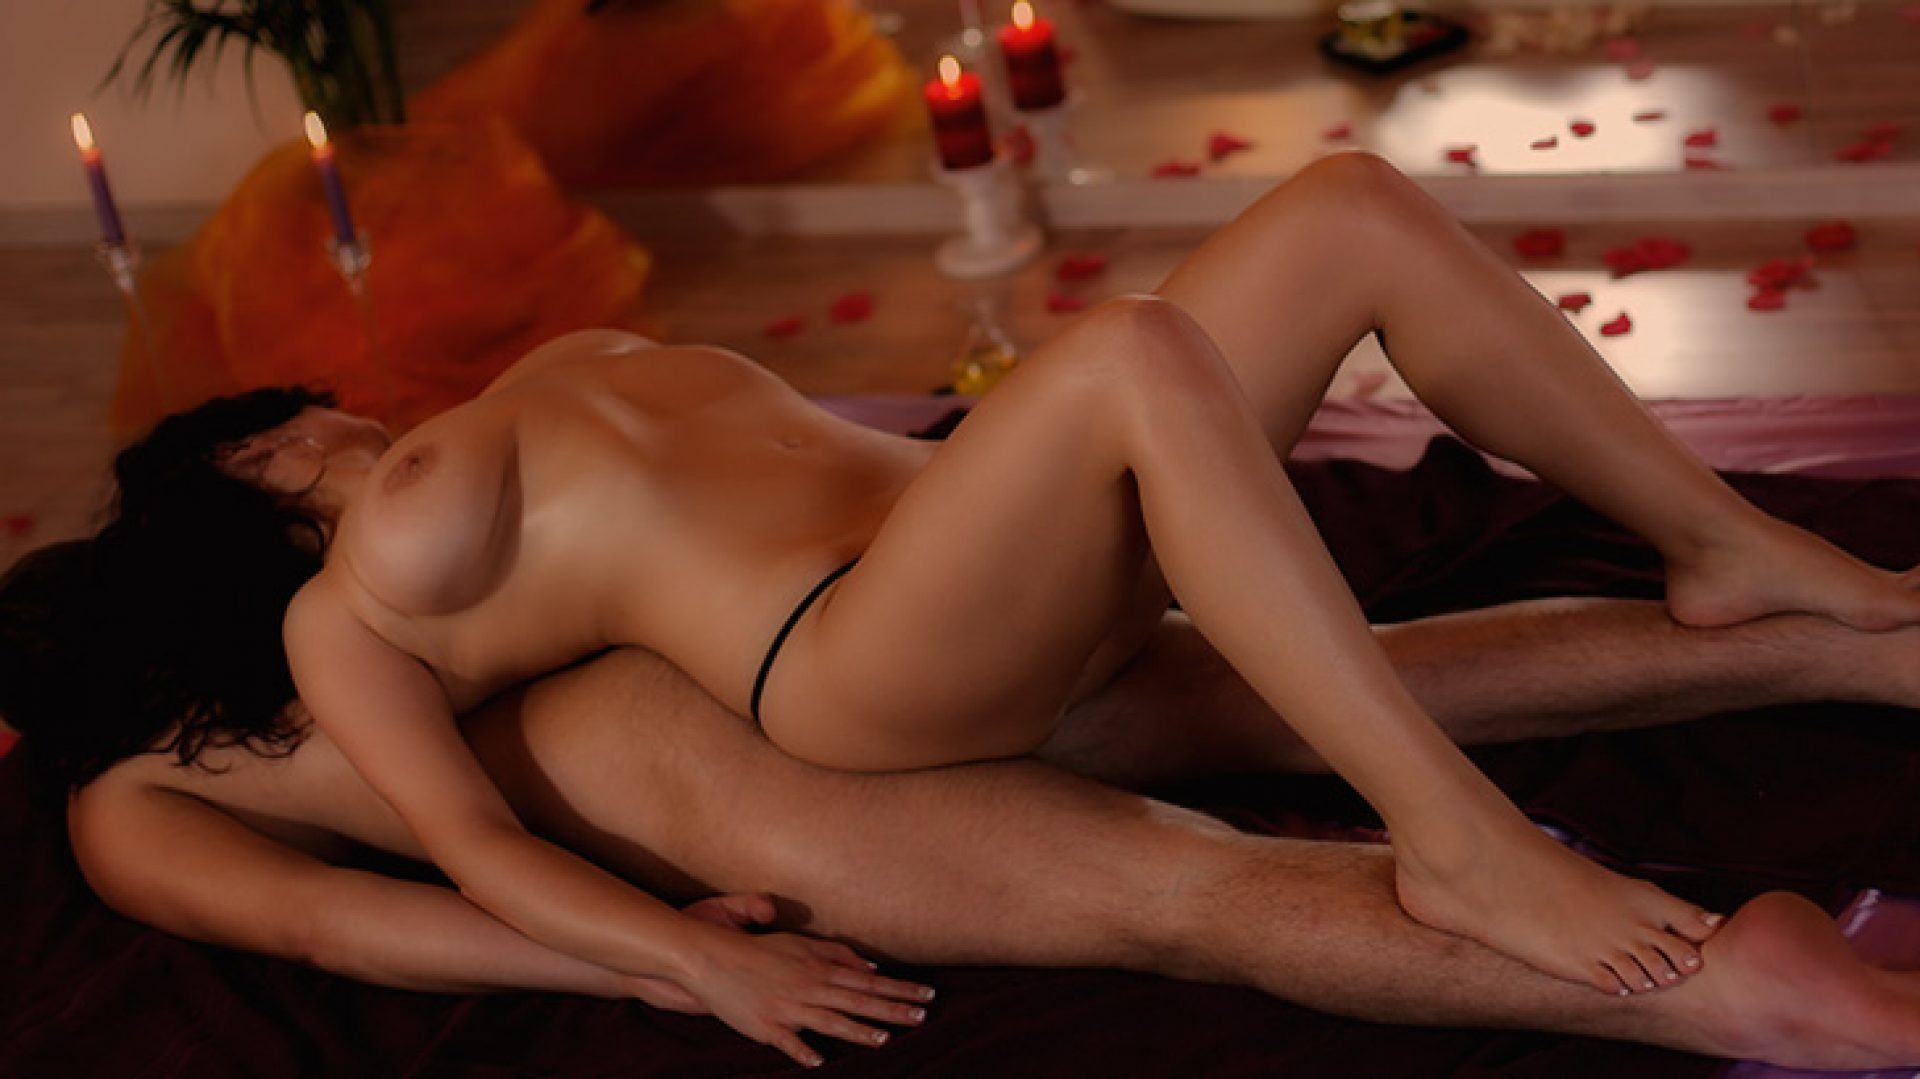 Tantra naked massage video